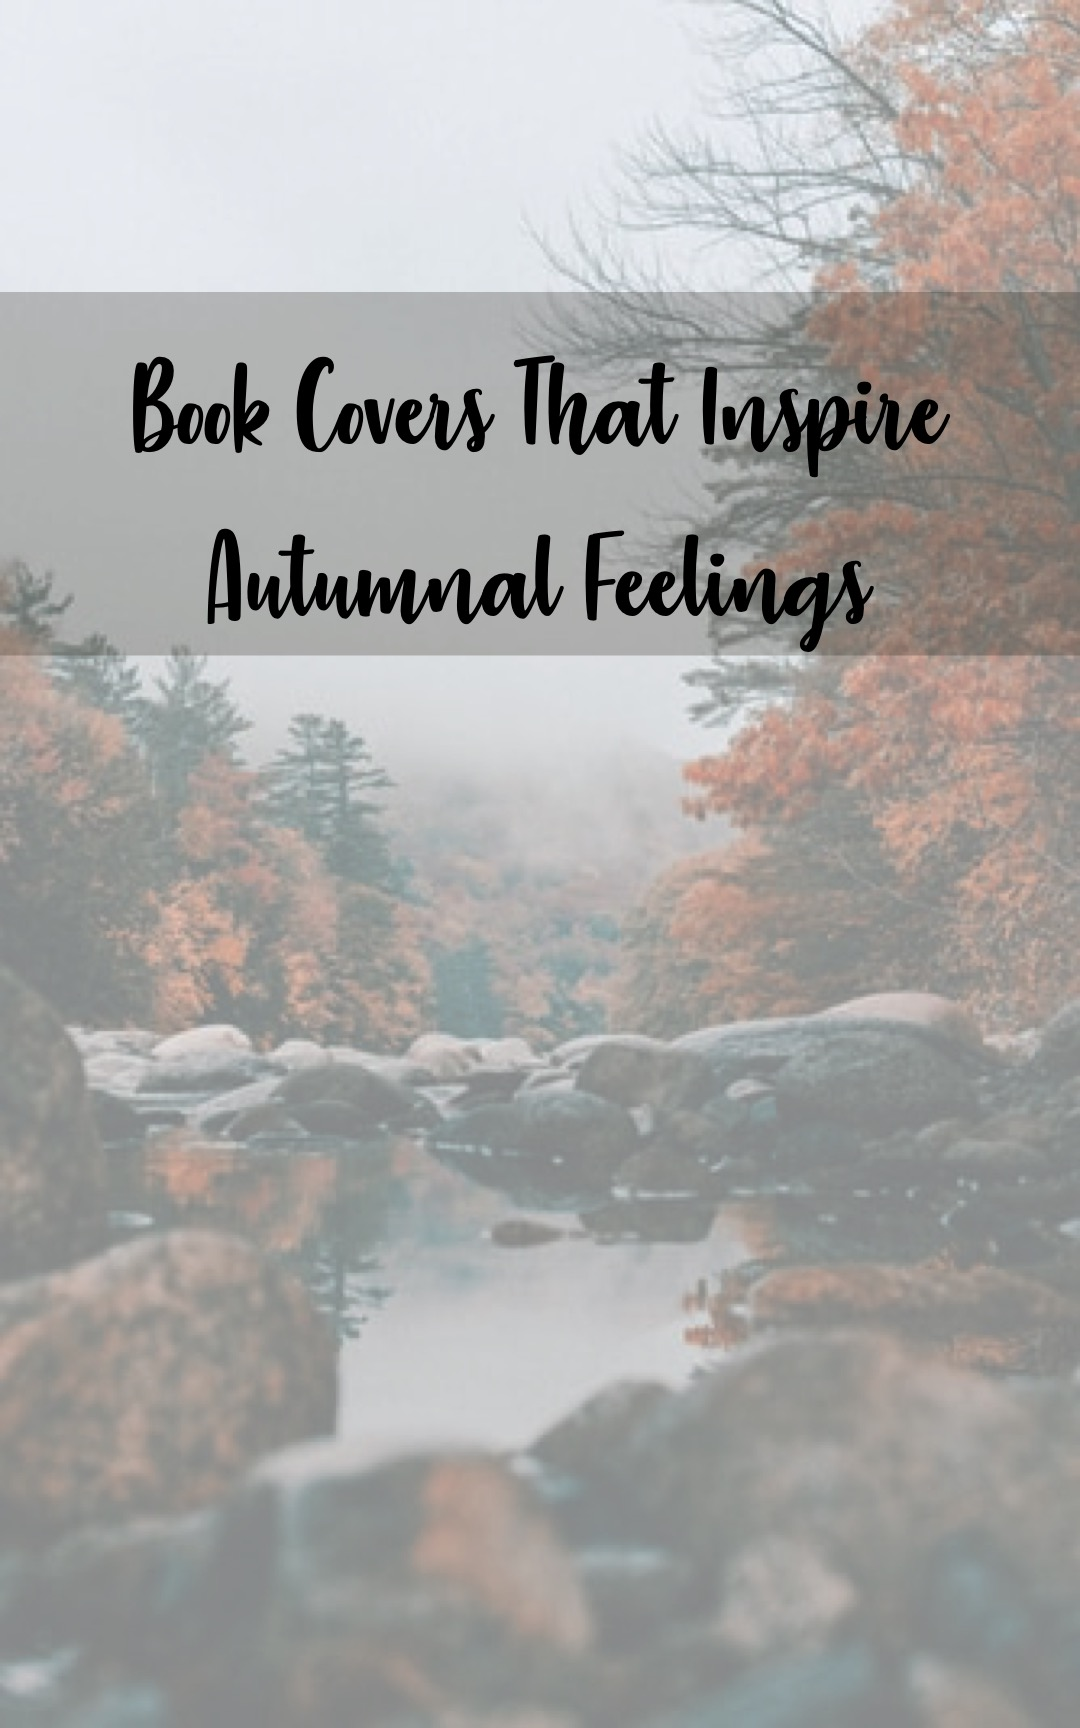 Book Covers That Inspire Autumnal Feelings